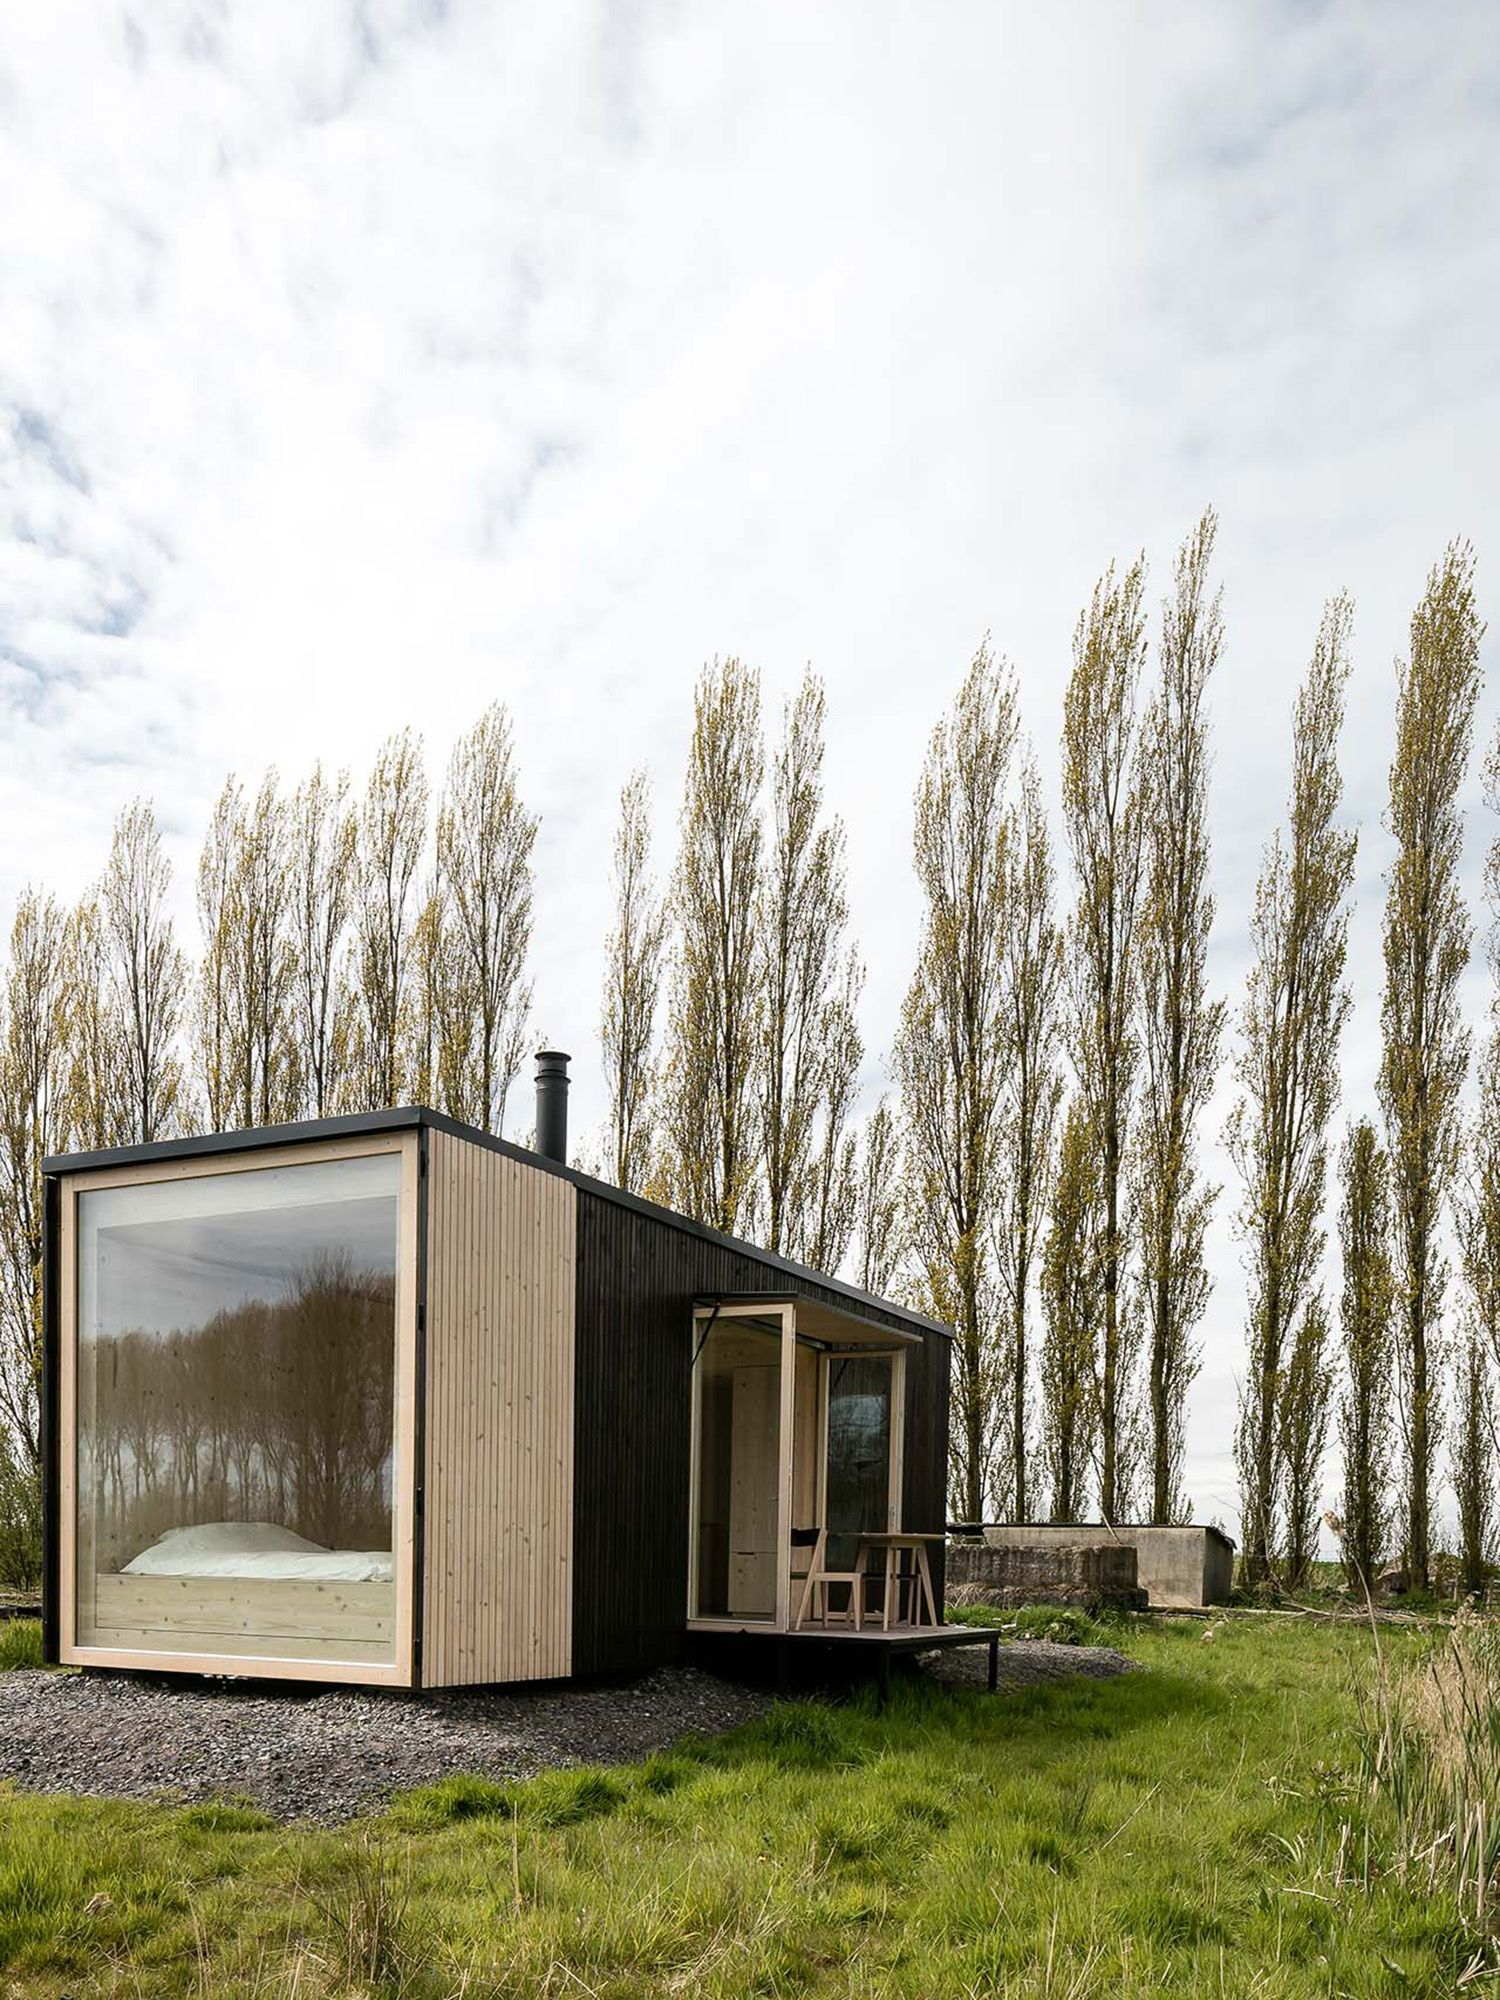 Container house ark shelter est living more who else wants simple